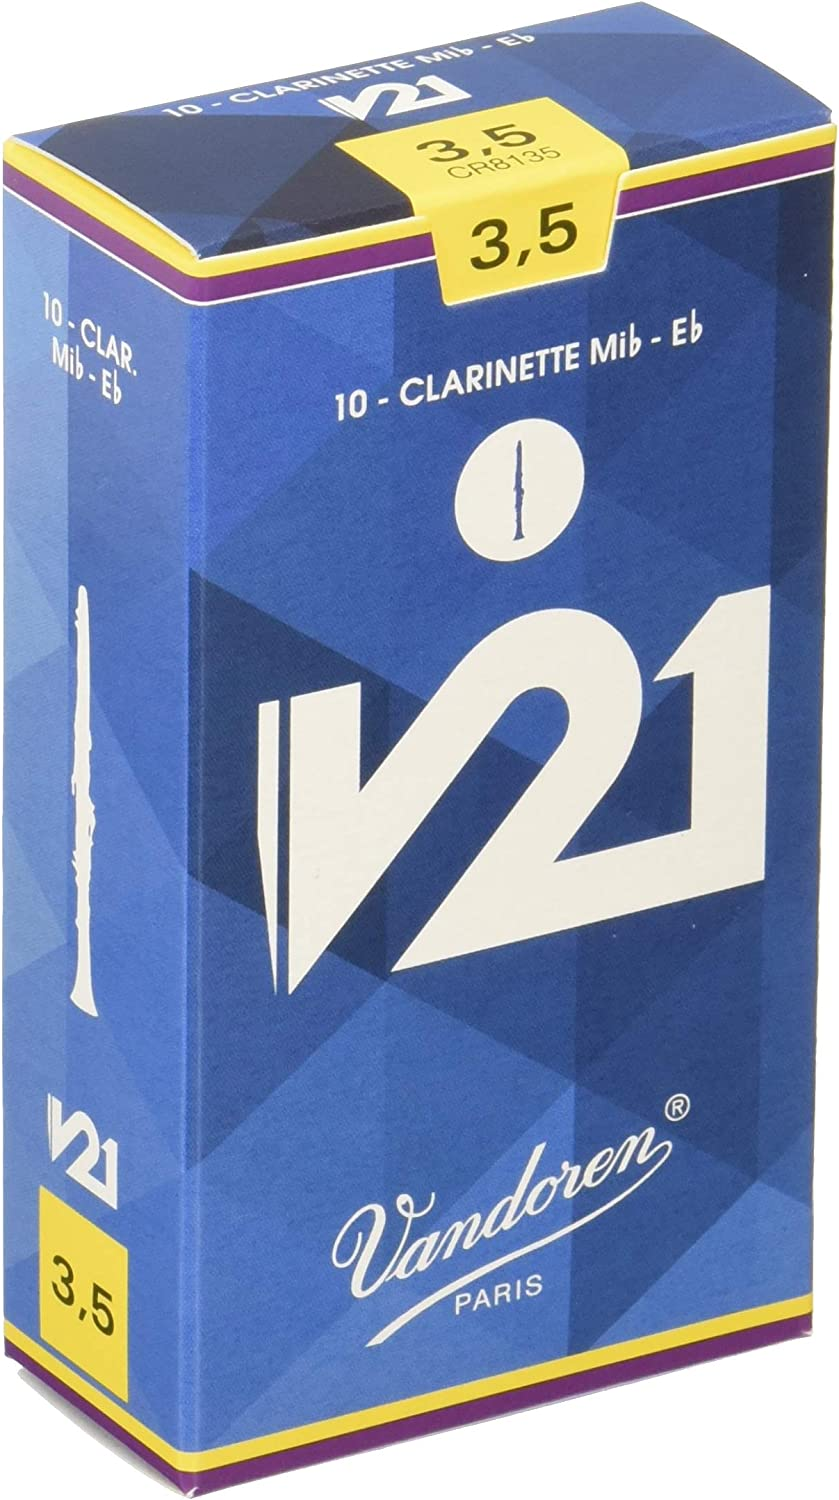 Vandoren Recommended CR8135 Bb Clarinet V21 Reeds of Strength Box 10 3.5; Max 54% OFF